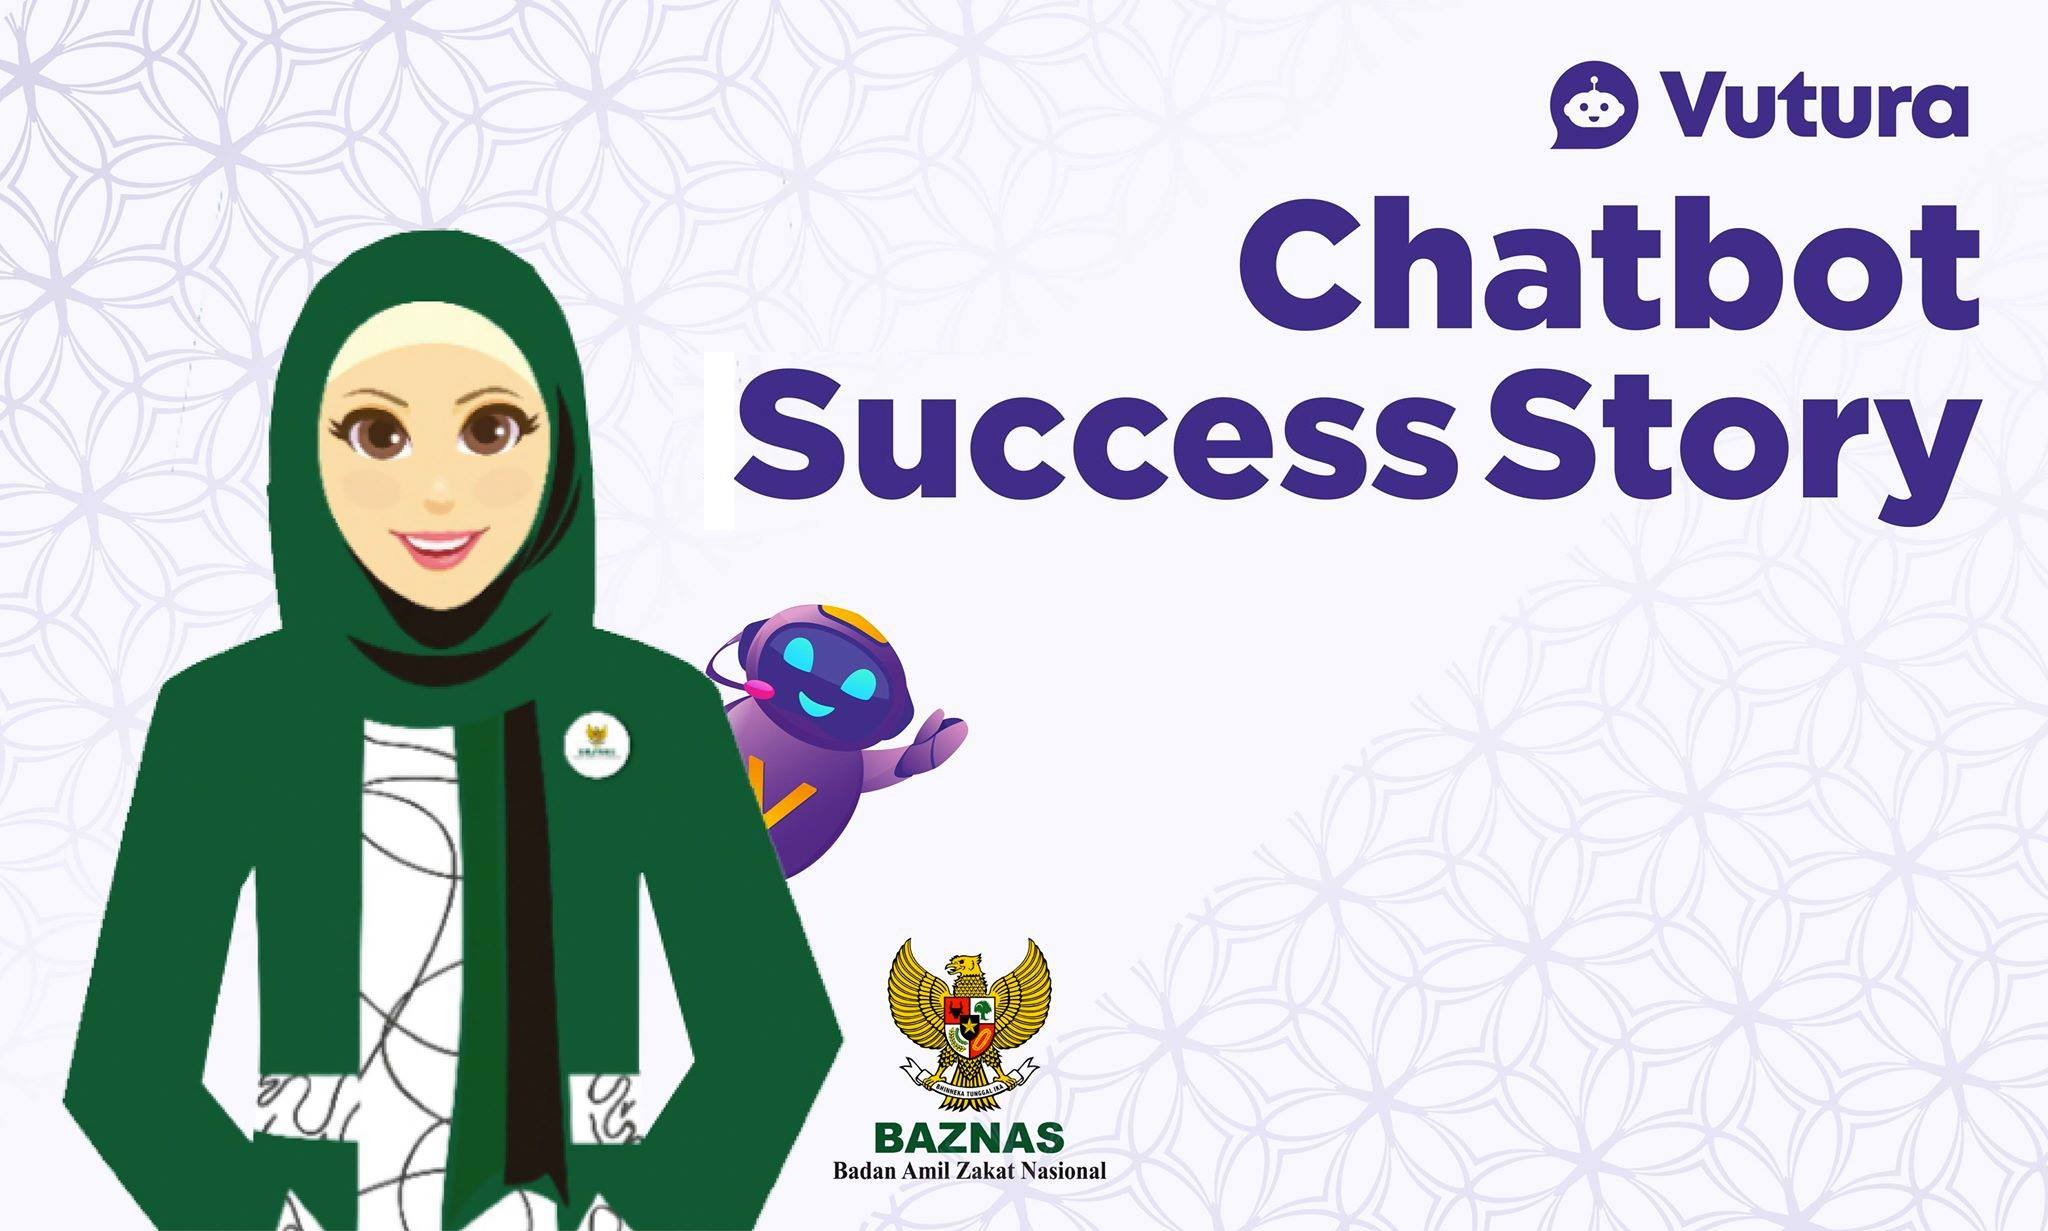 Chatbot Success Story